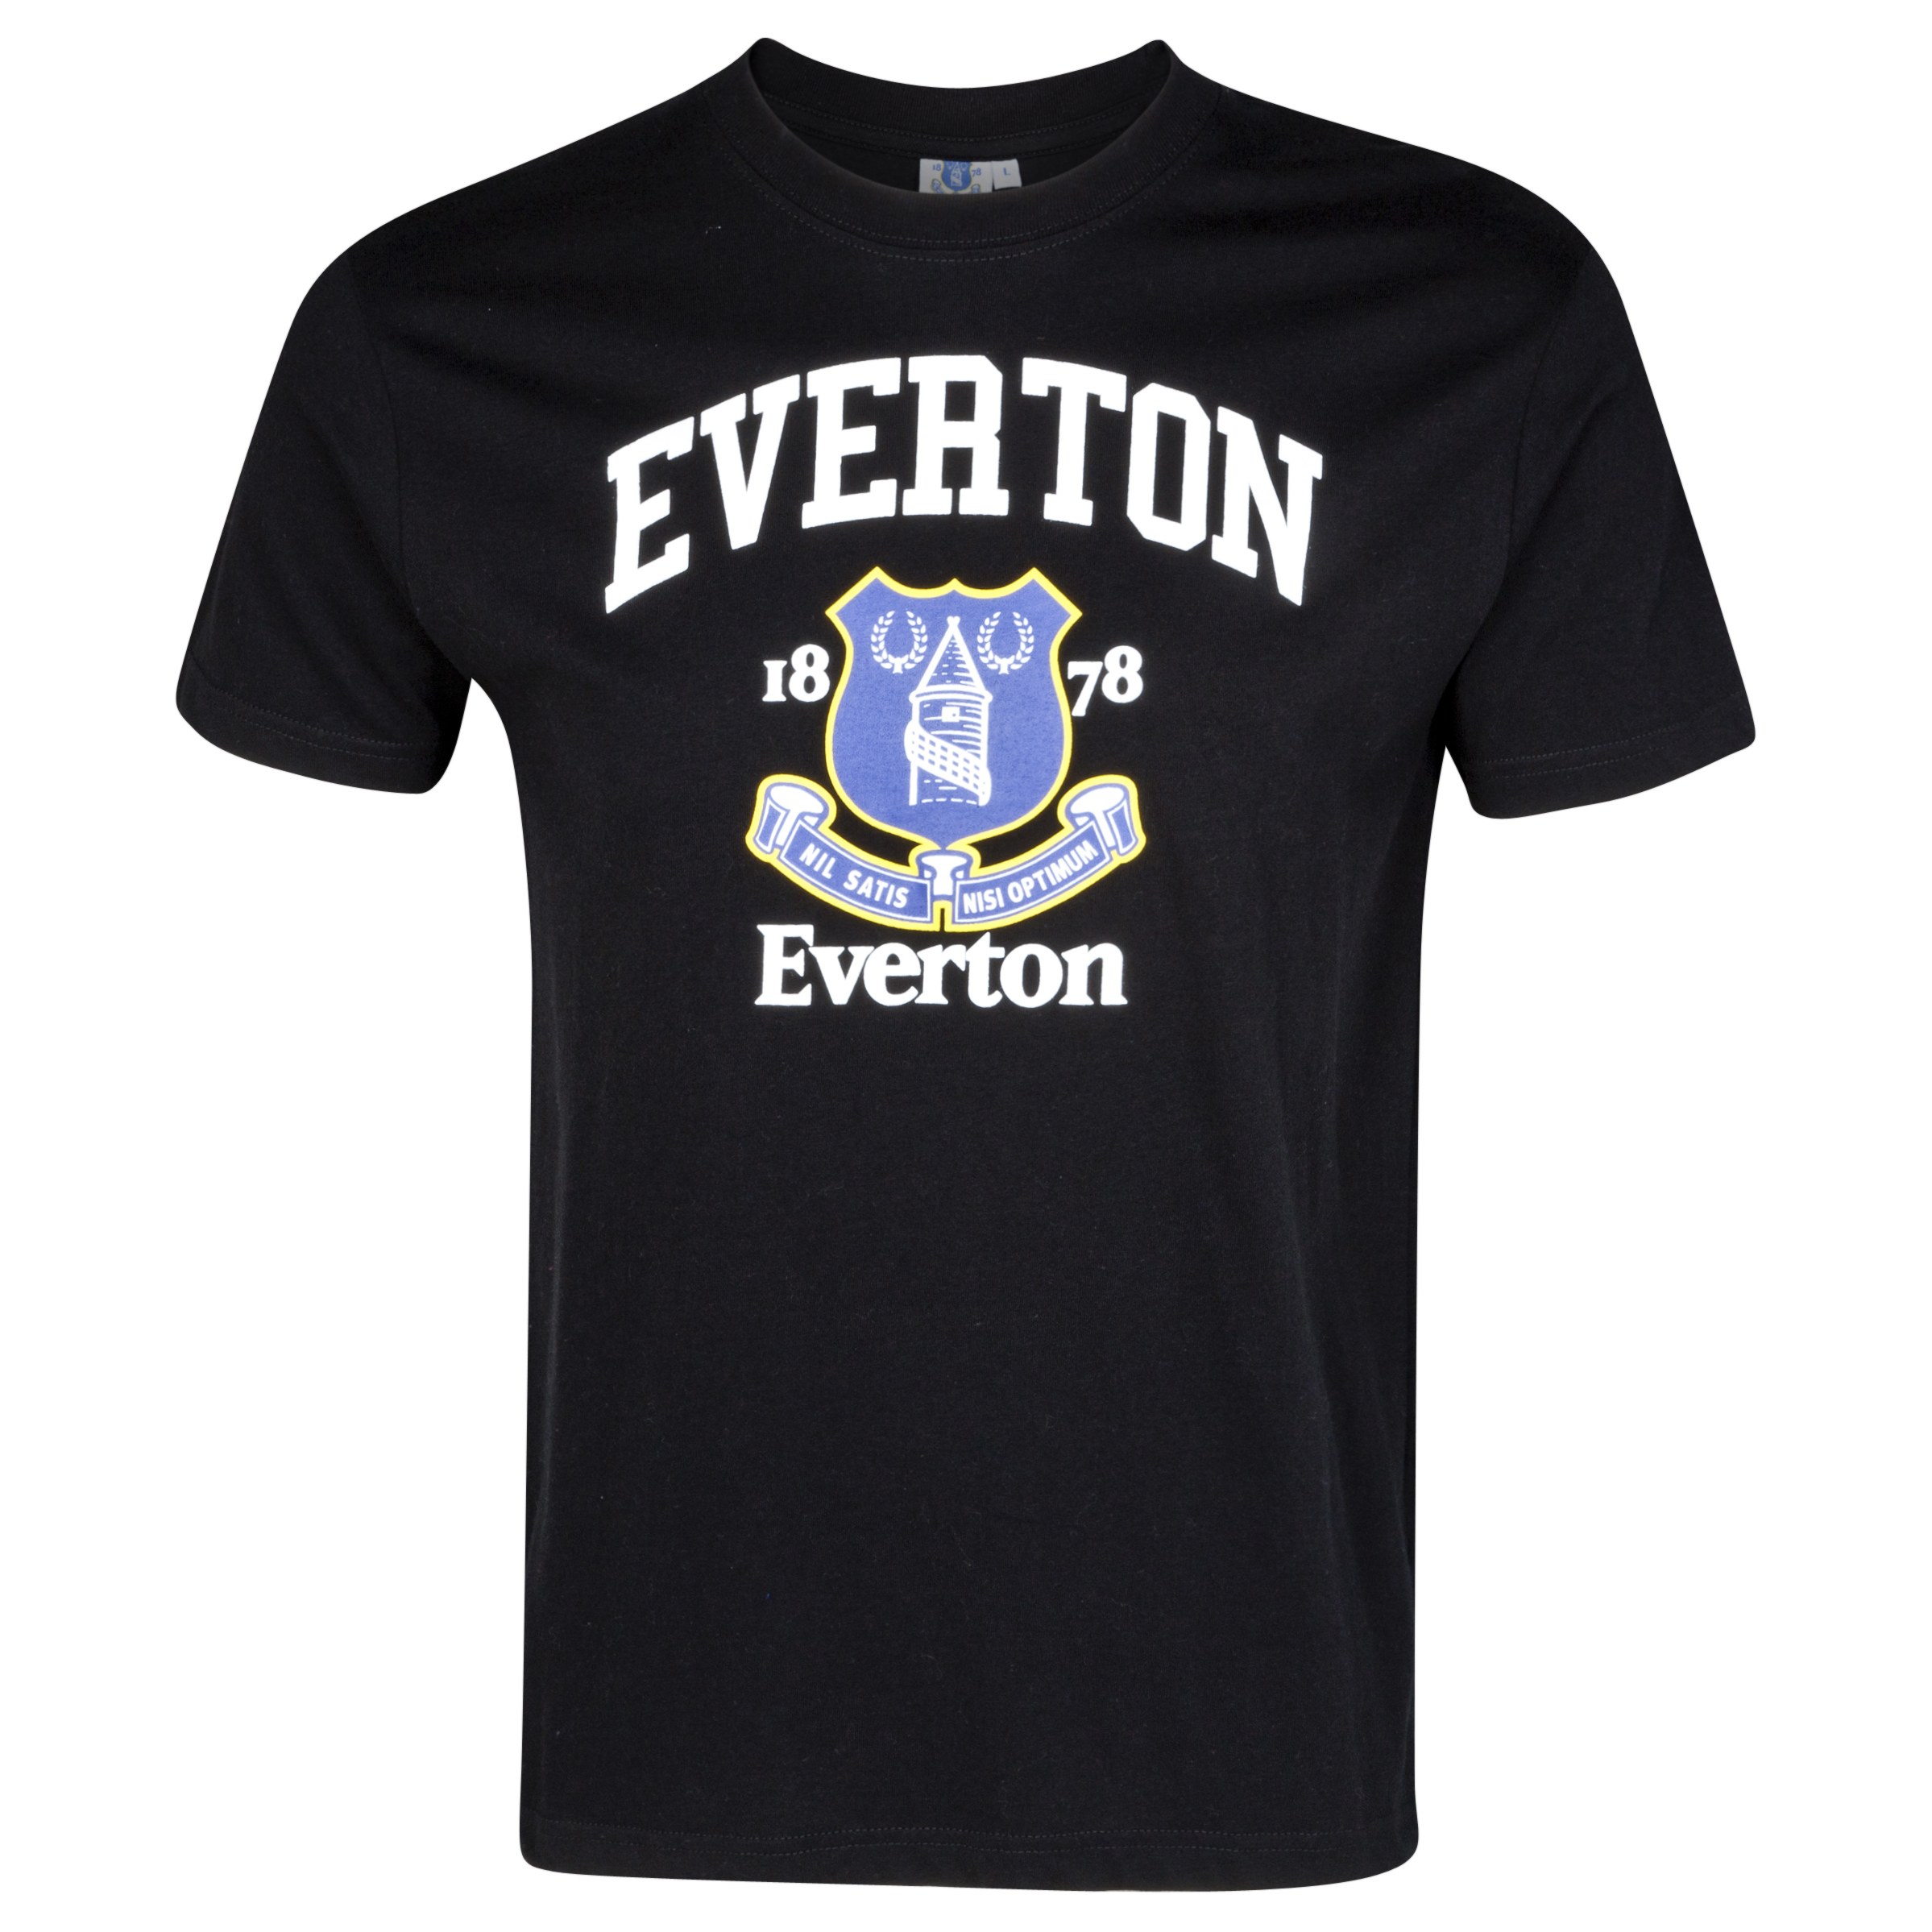 Everton Essential Faith Graphic T-Shirt - Black - Older Boys